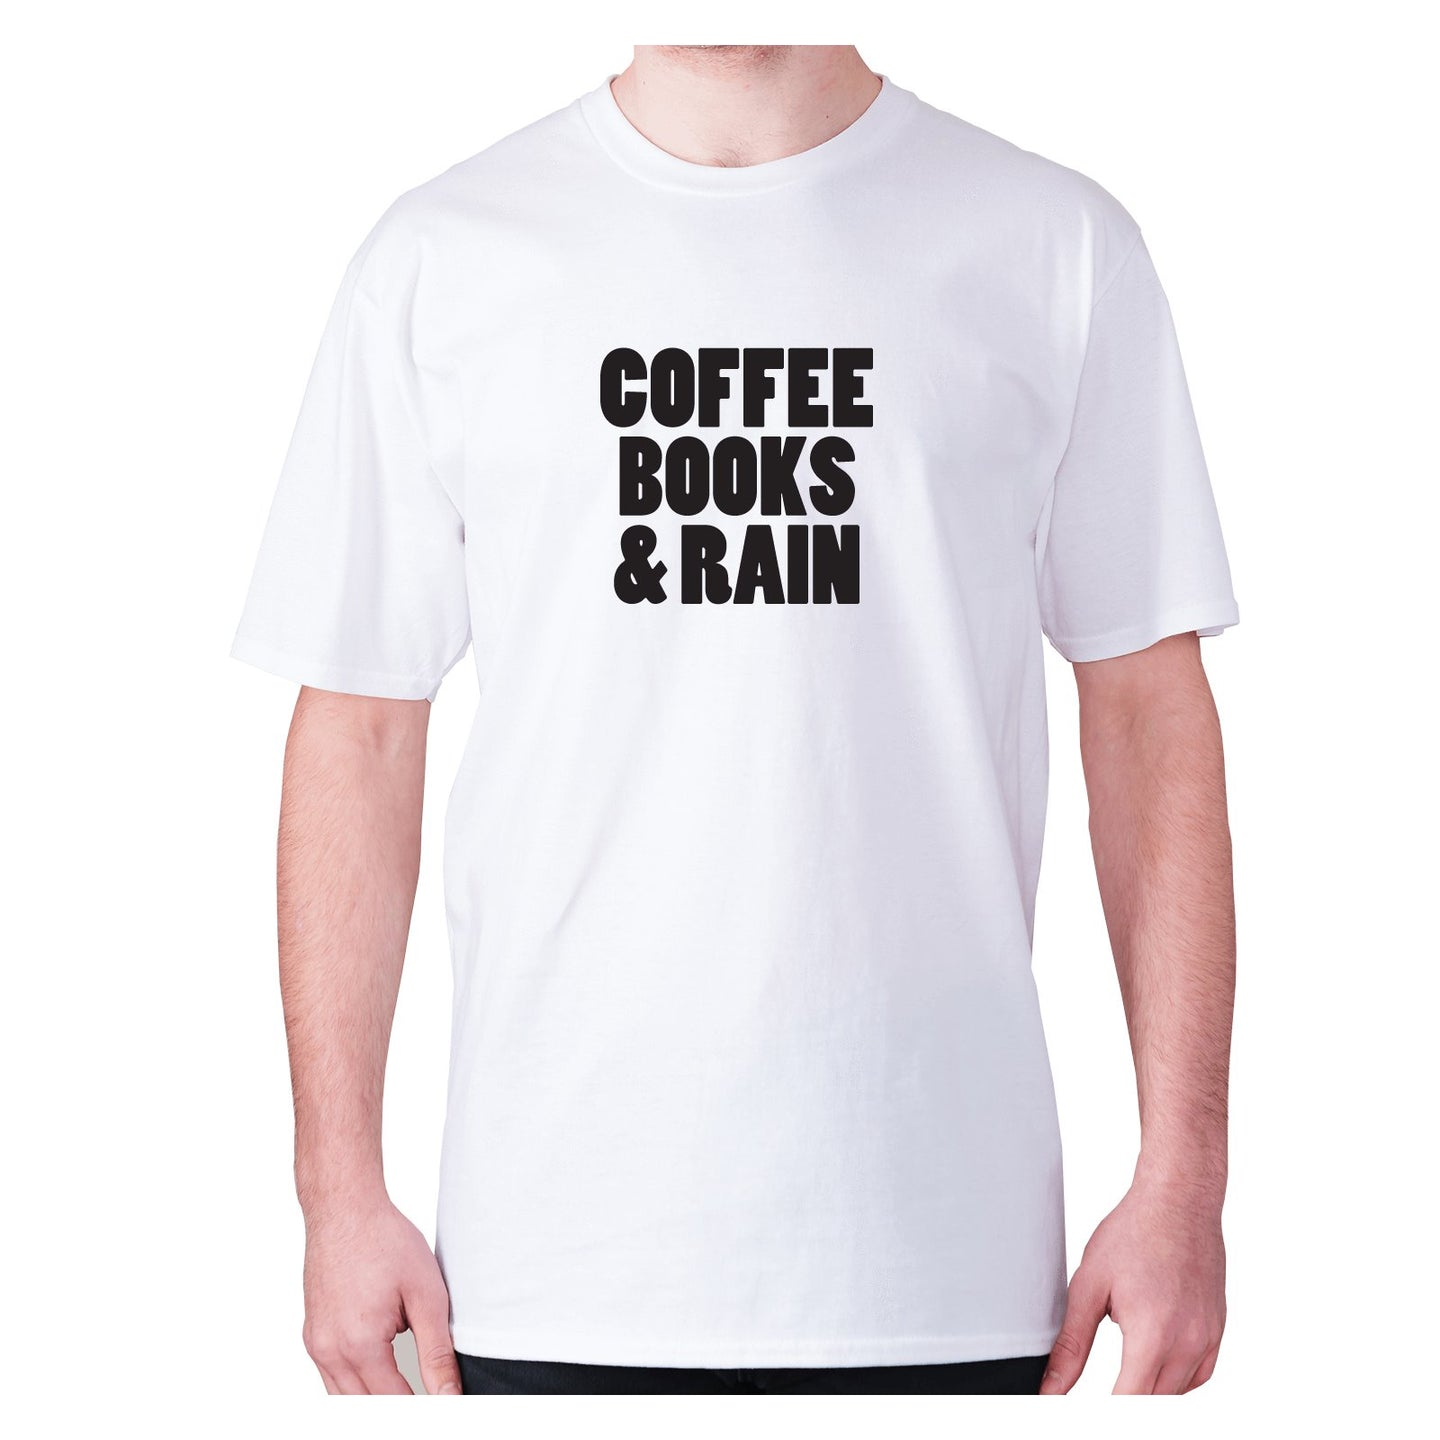 Coffee books and rain - men's premium t-shirt - Graphic Gear